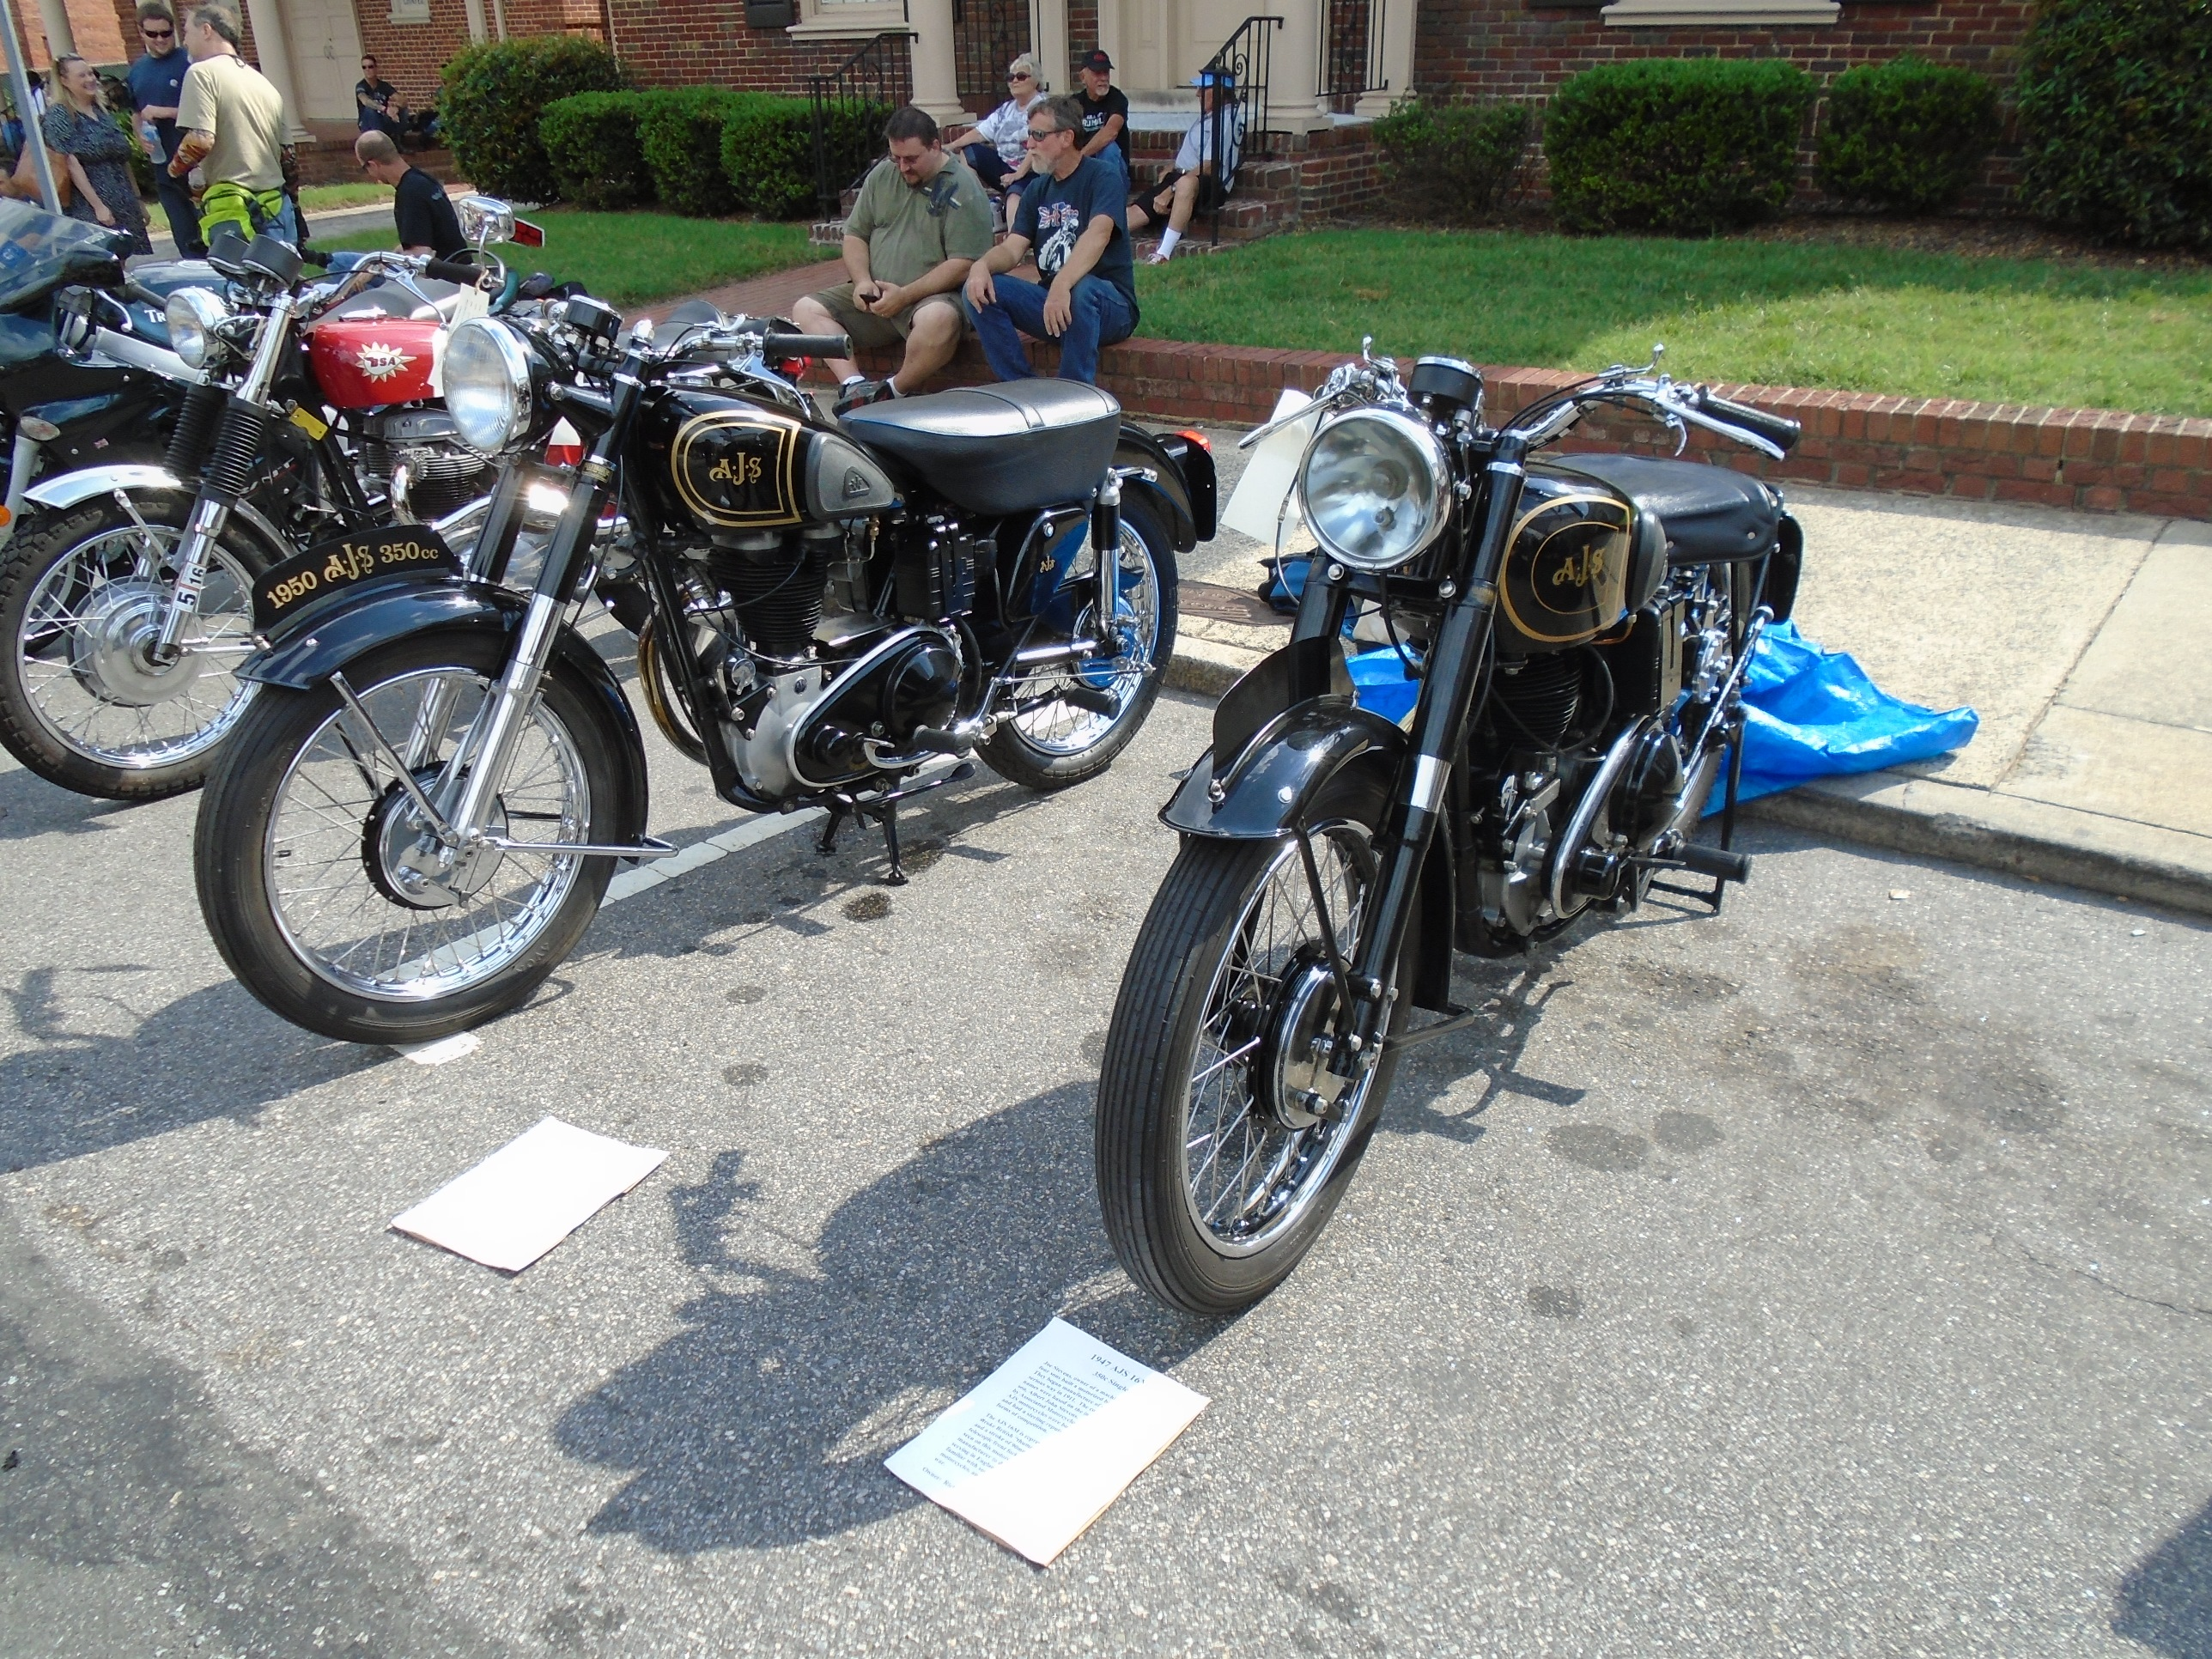 motorcycle show Archives - Motopsyco's Asylum Crazy about